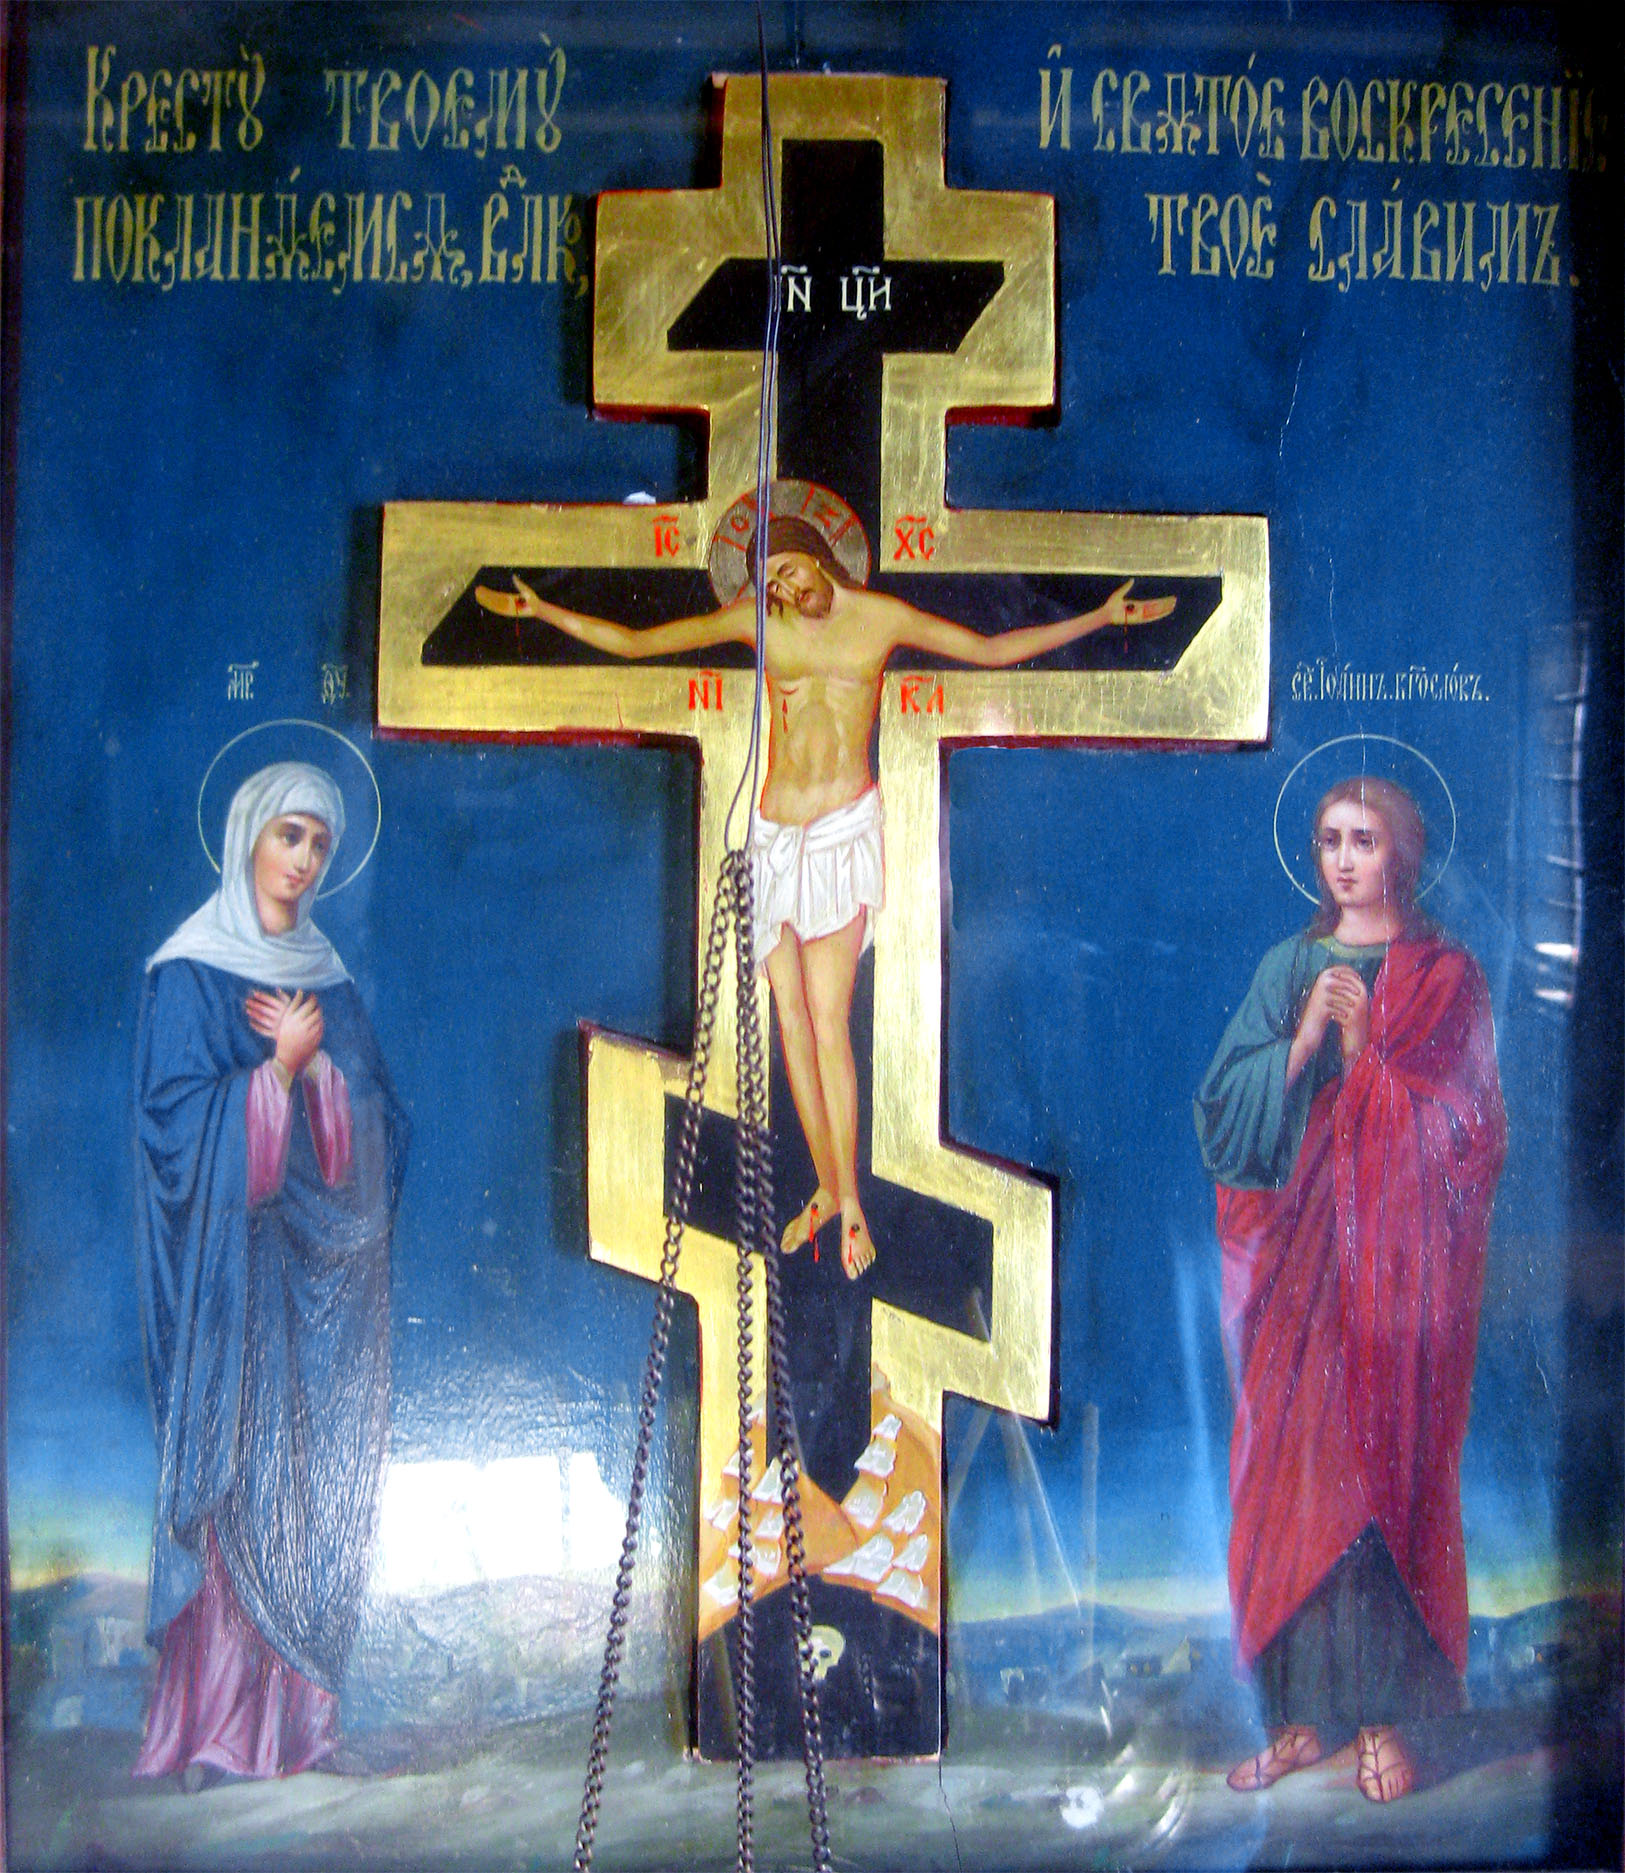 Russian icon of crucifixion with Theotokos and Saint John the Evangelist (Dormition Church at Kondopoga) dans immagini sacre Russian_icon_of_crucifixion_with_Theotokos_and_Saint_John_the_Evangelist_(Dormition_Church_at_Kondopoga)